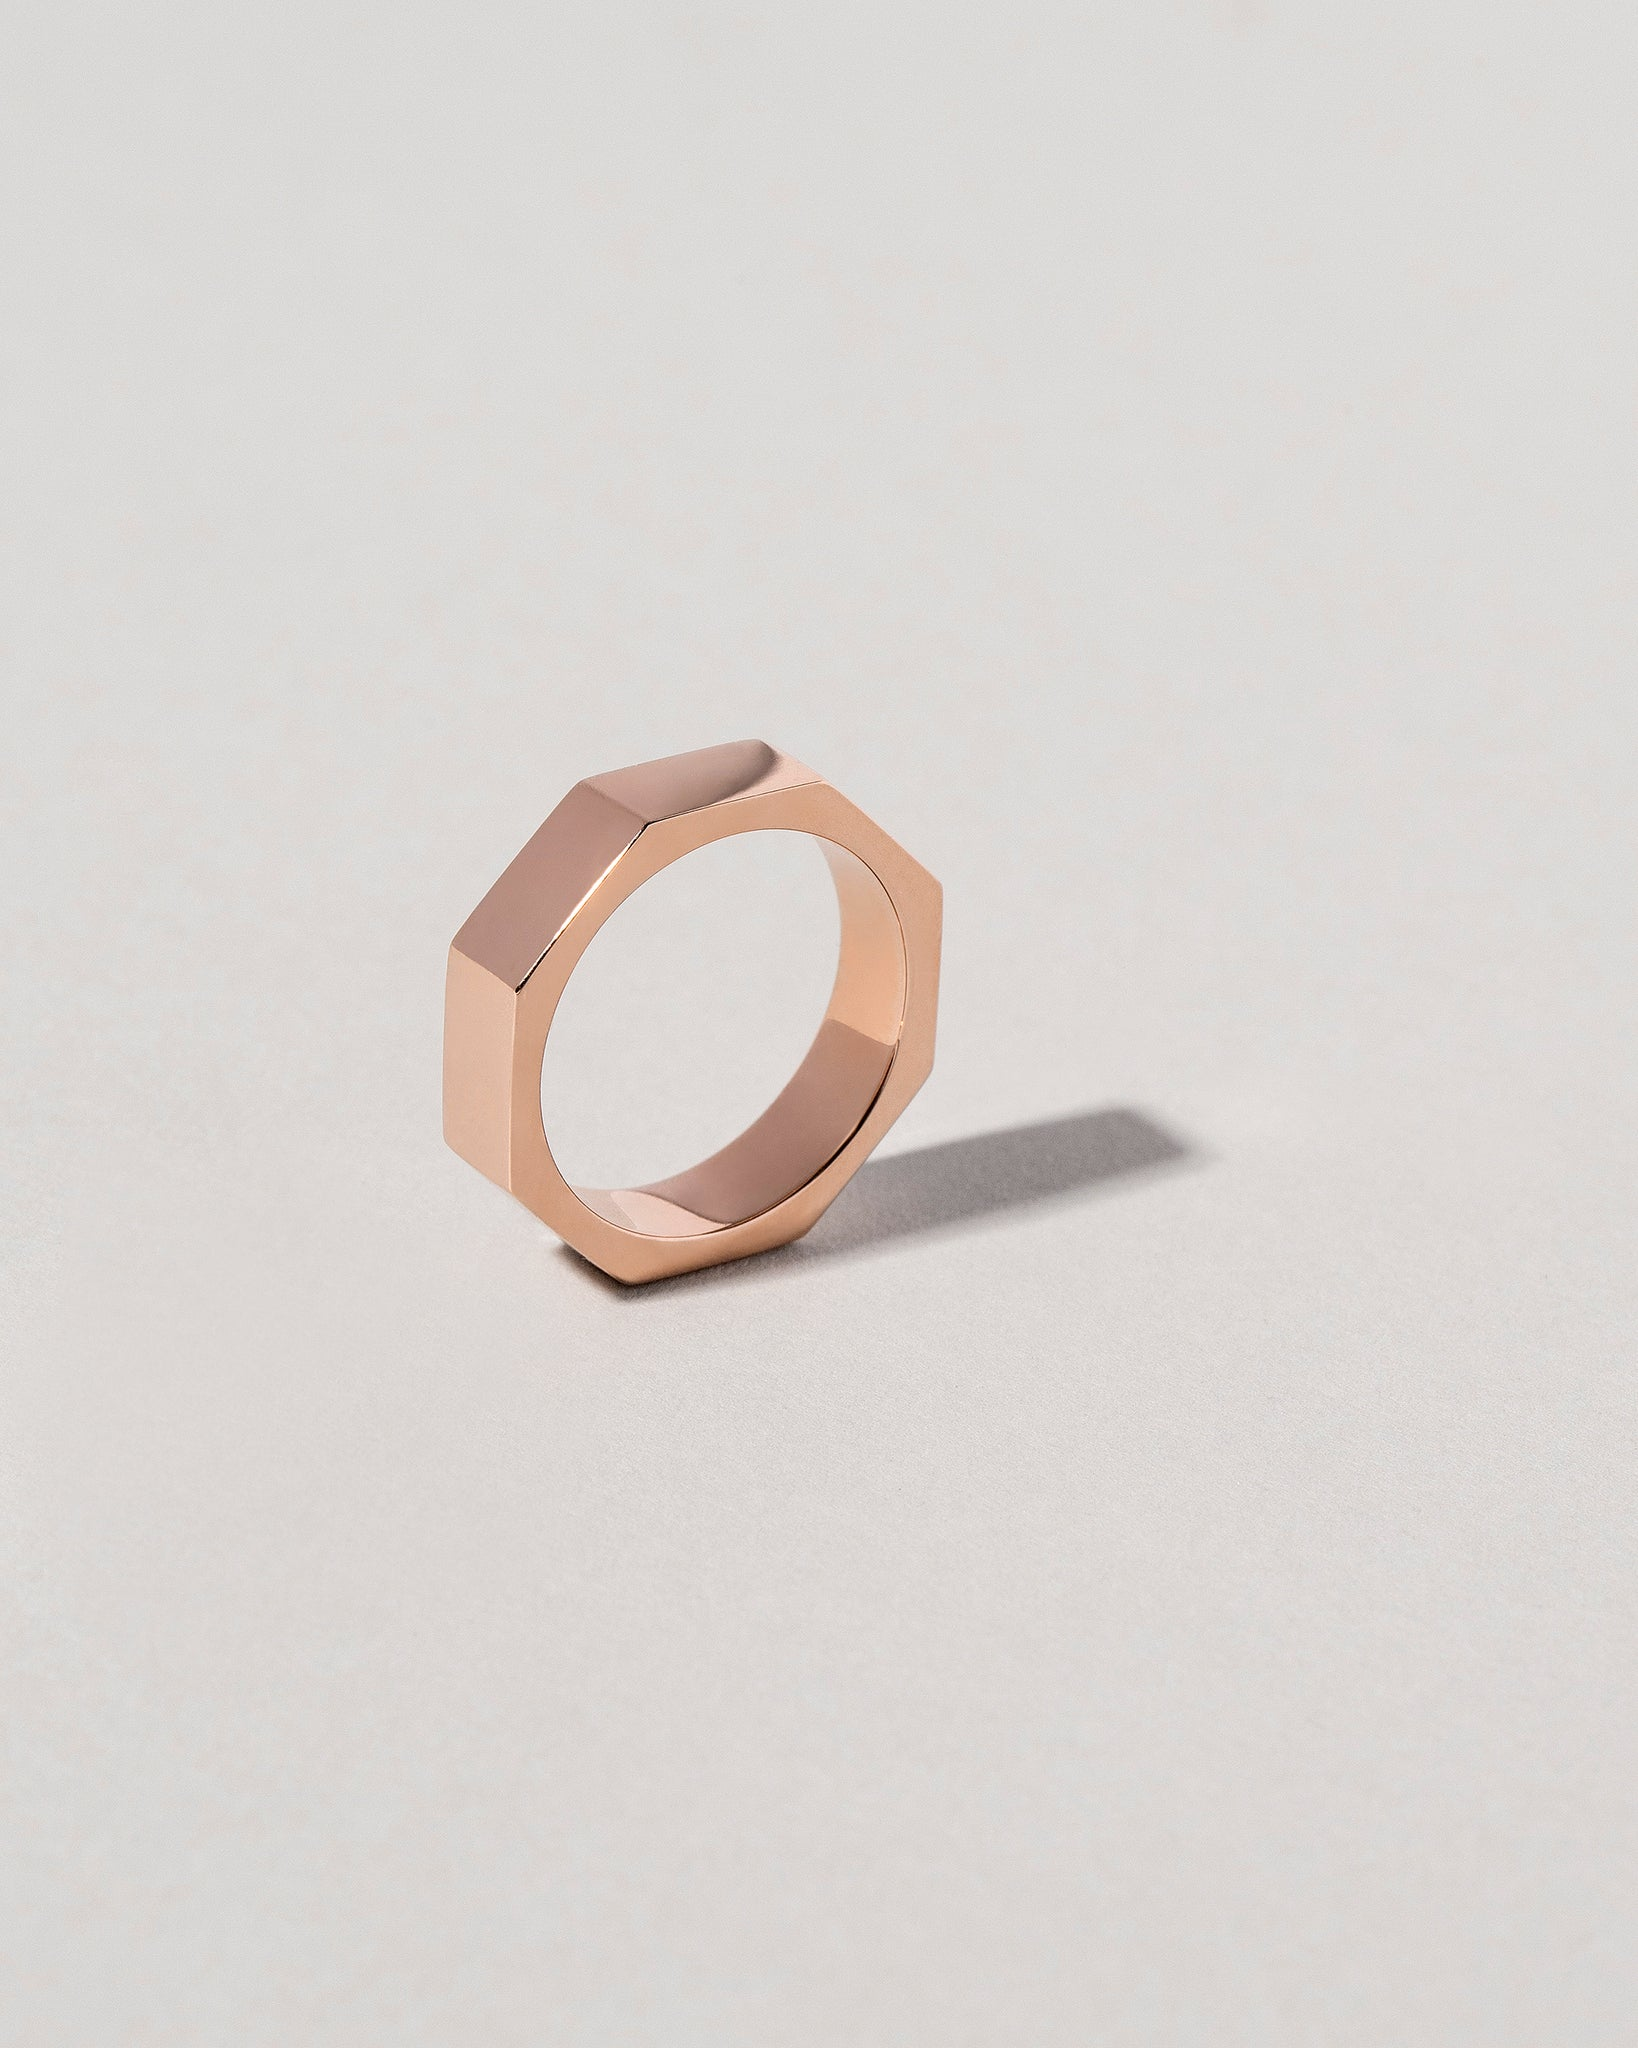 Segmented Band in Rose Gold